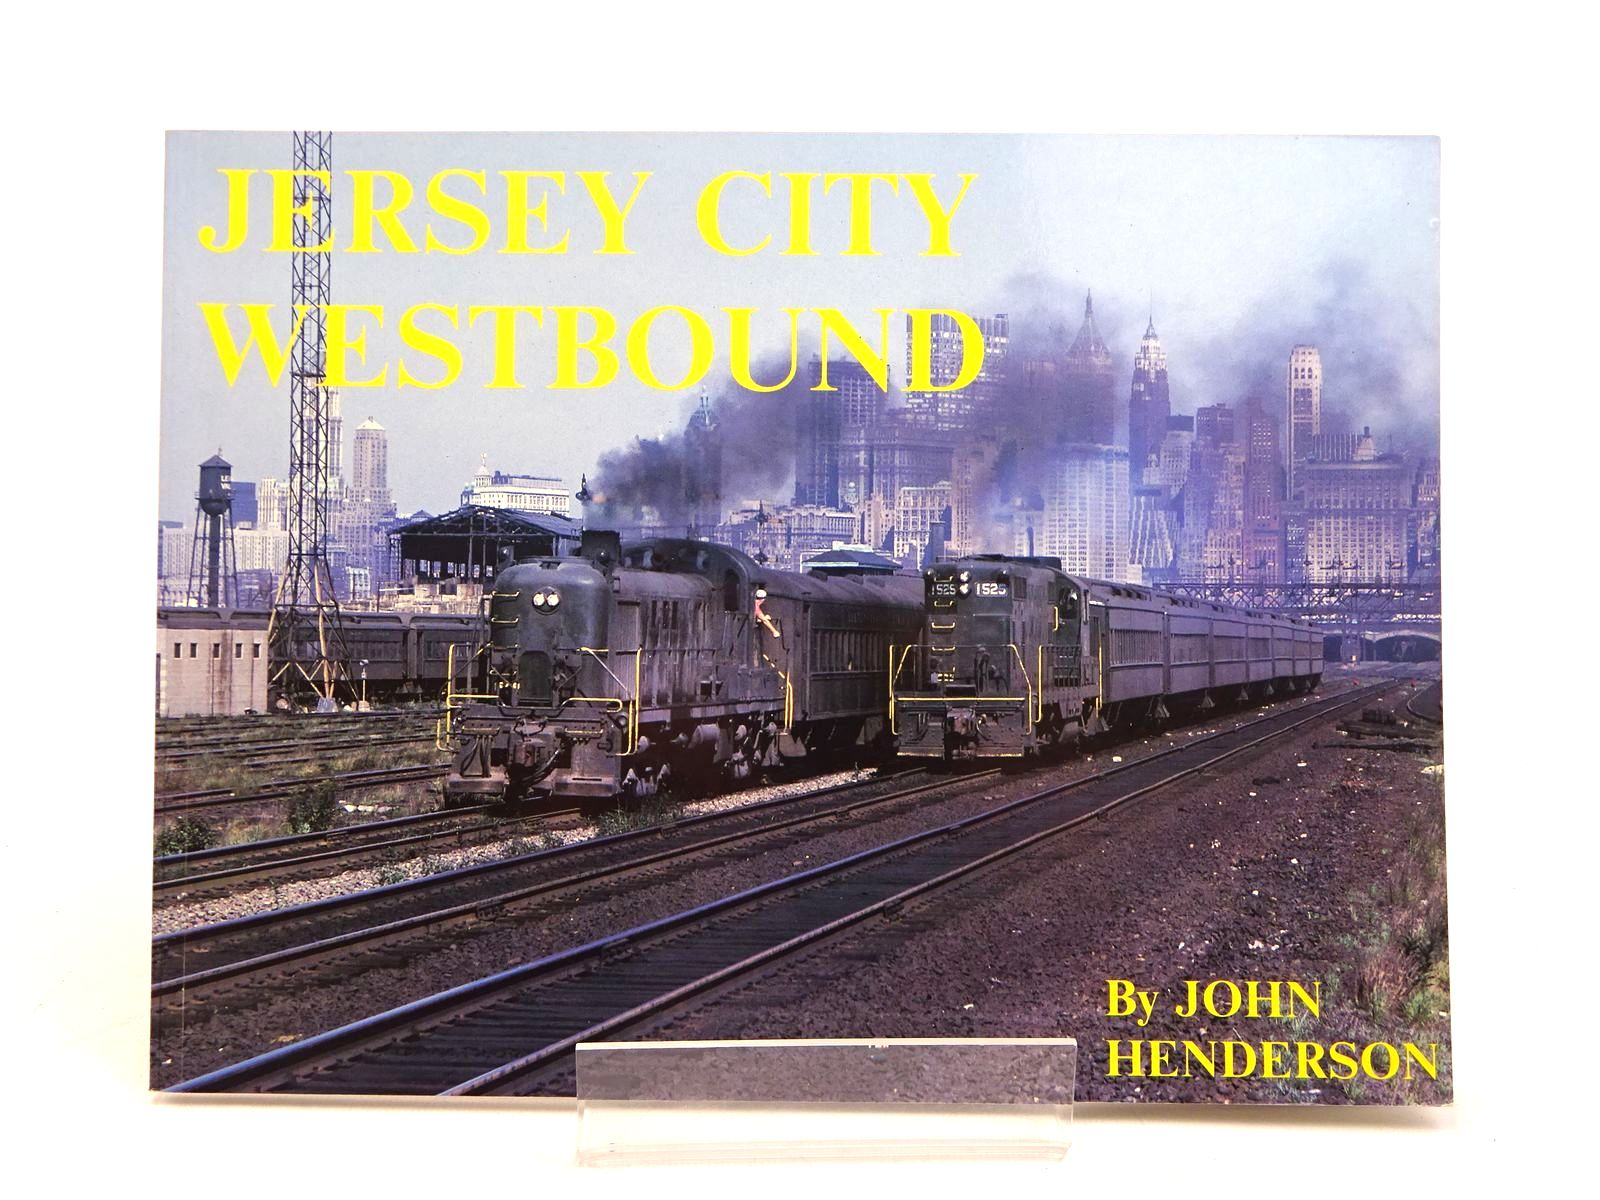 Photo of JERSEY CITY WESTBOUND written by Henderson, John published by H&m Productions (STOCK CODE: 1818019)  for sale by Stella & Rose's Books